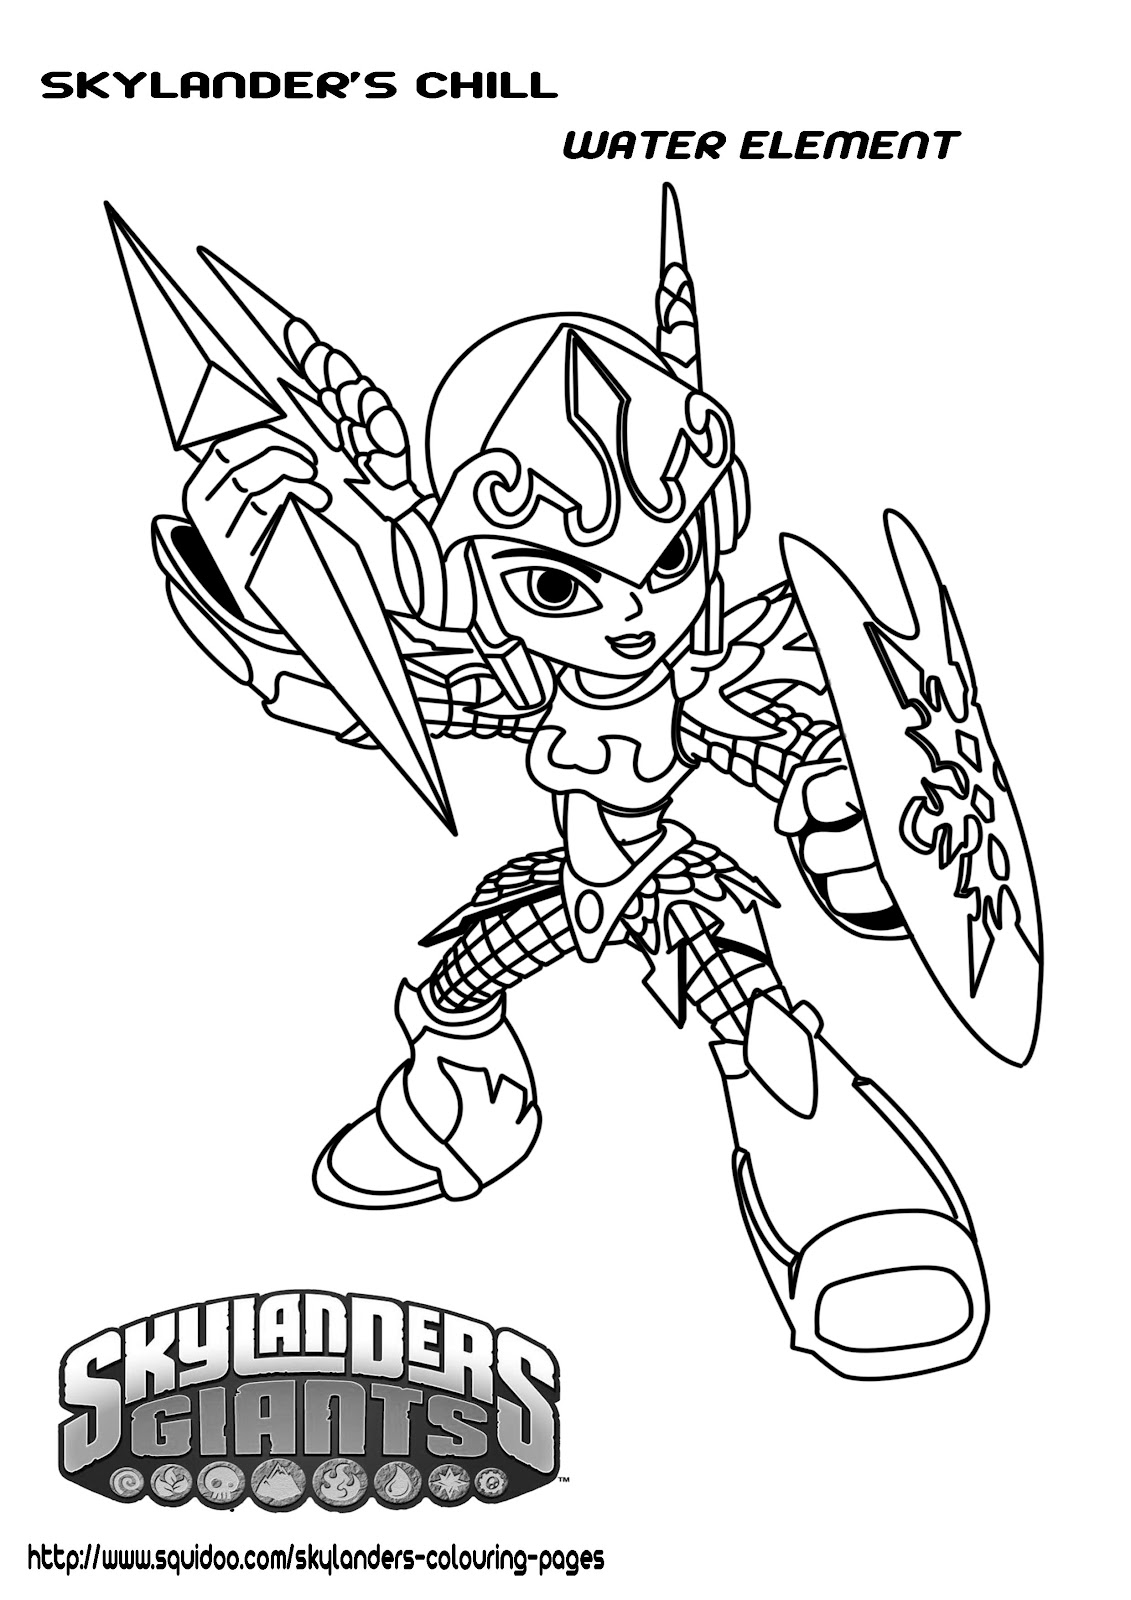 Skylanders hot head coloring pages ~ Printable Skylanders Coloring Pages – Feisty Frugal & Fabulous